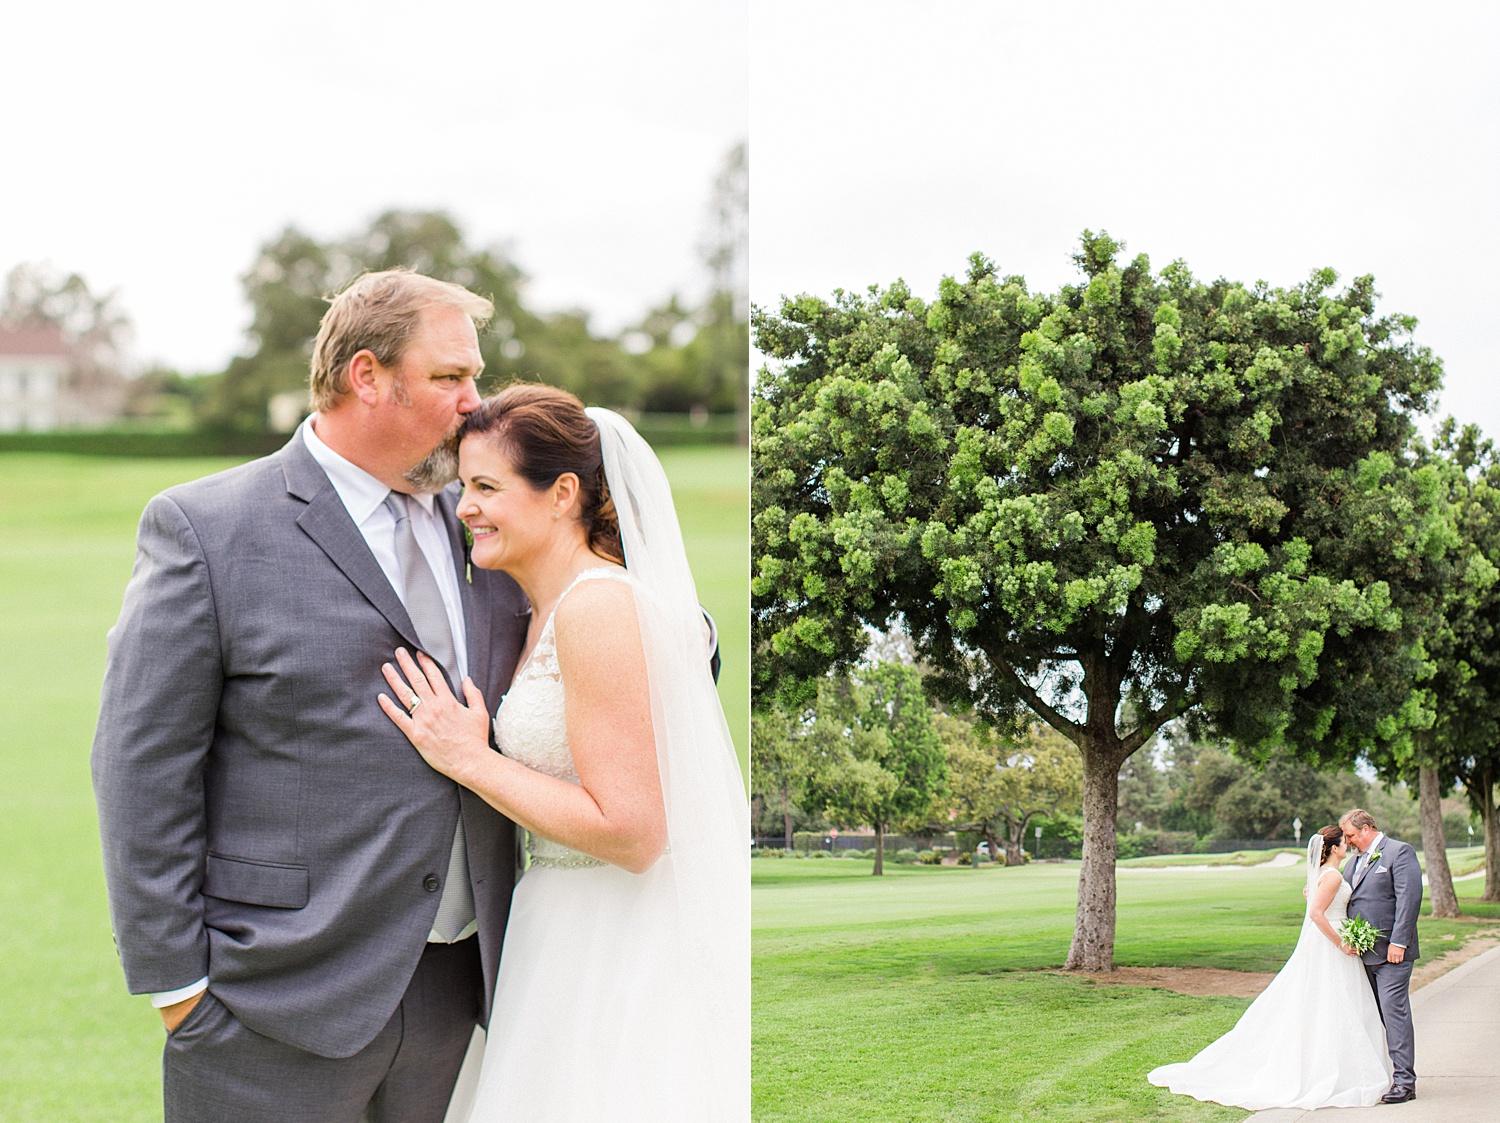 thevondys.com | Langham Pasadena | Los Angeles Wedding Photographer | The Vondys